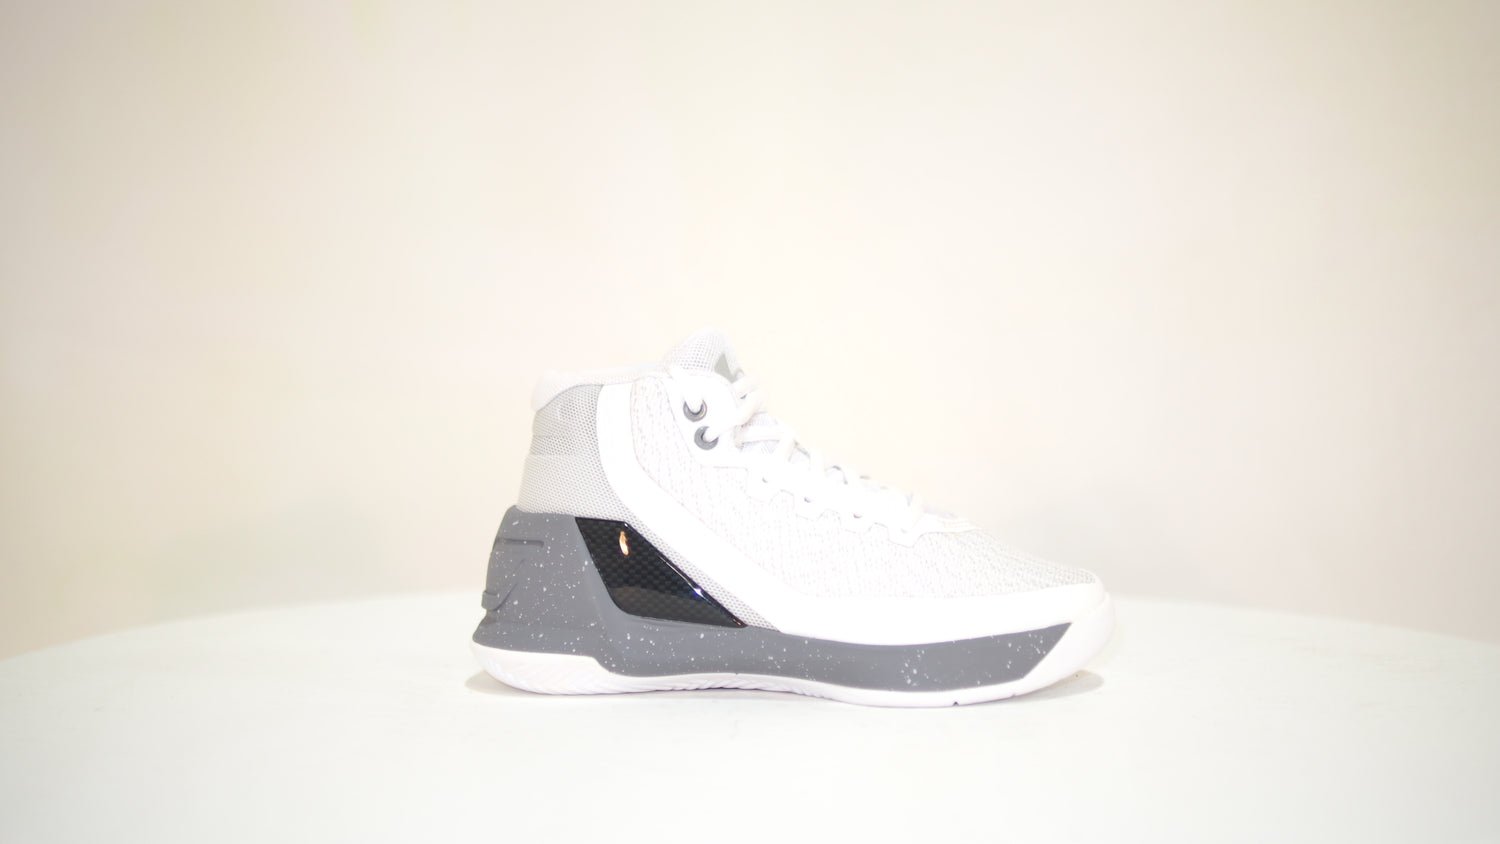 PS Curry 3 - Dream Town Shoes